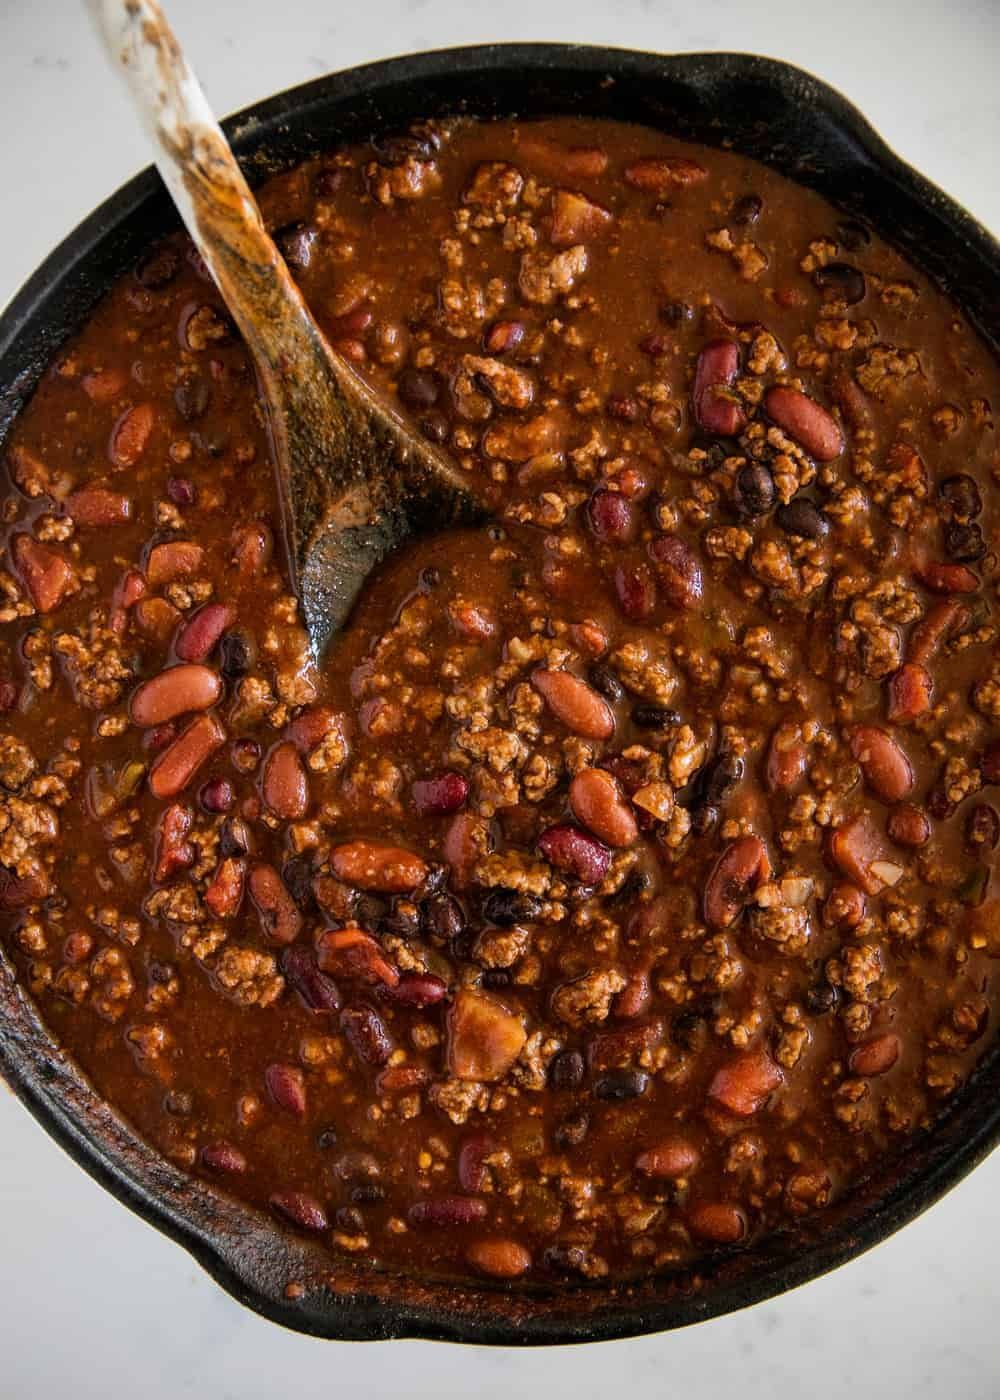 beef chili in a cast iron skillet with a wooden spoon